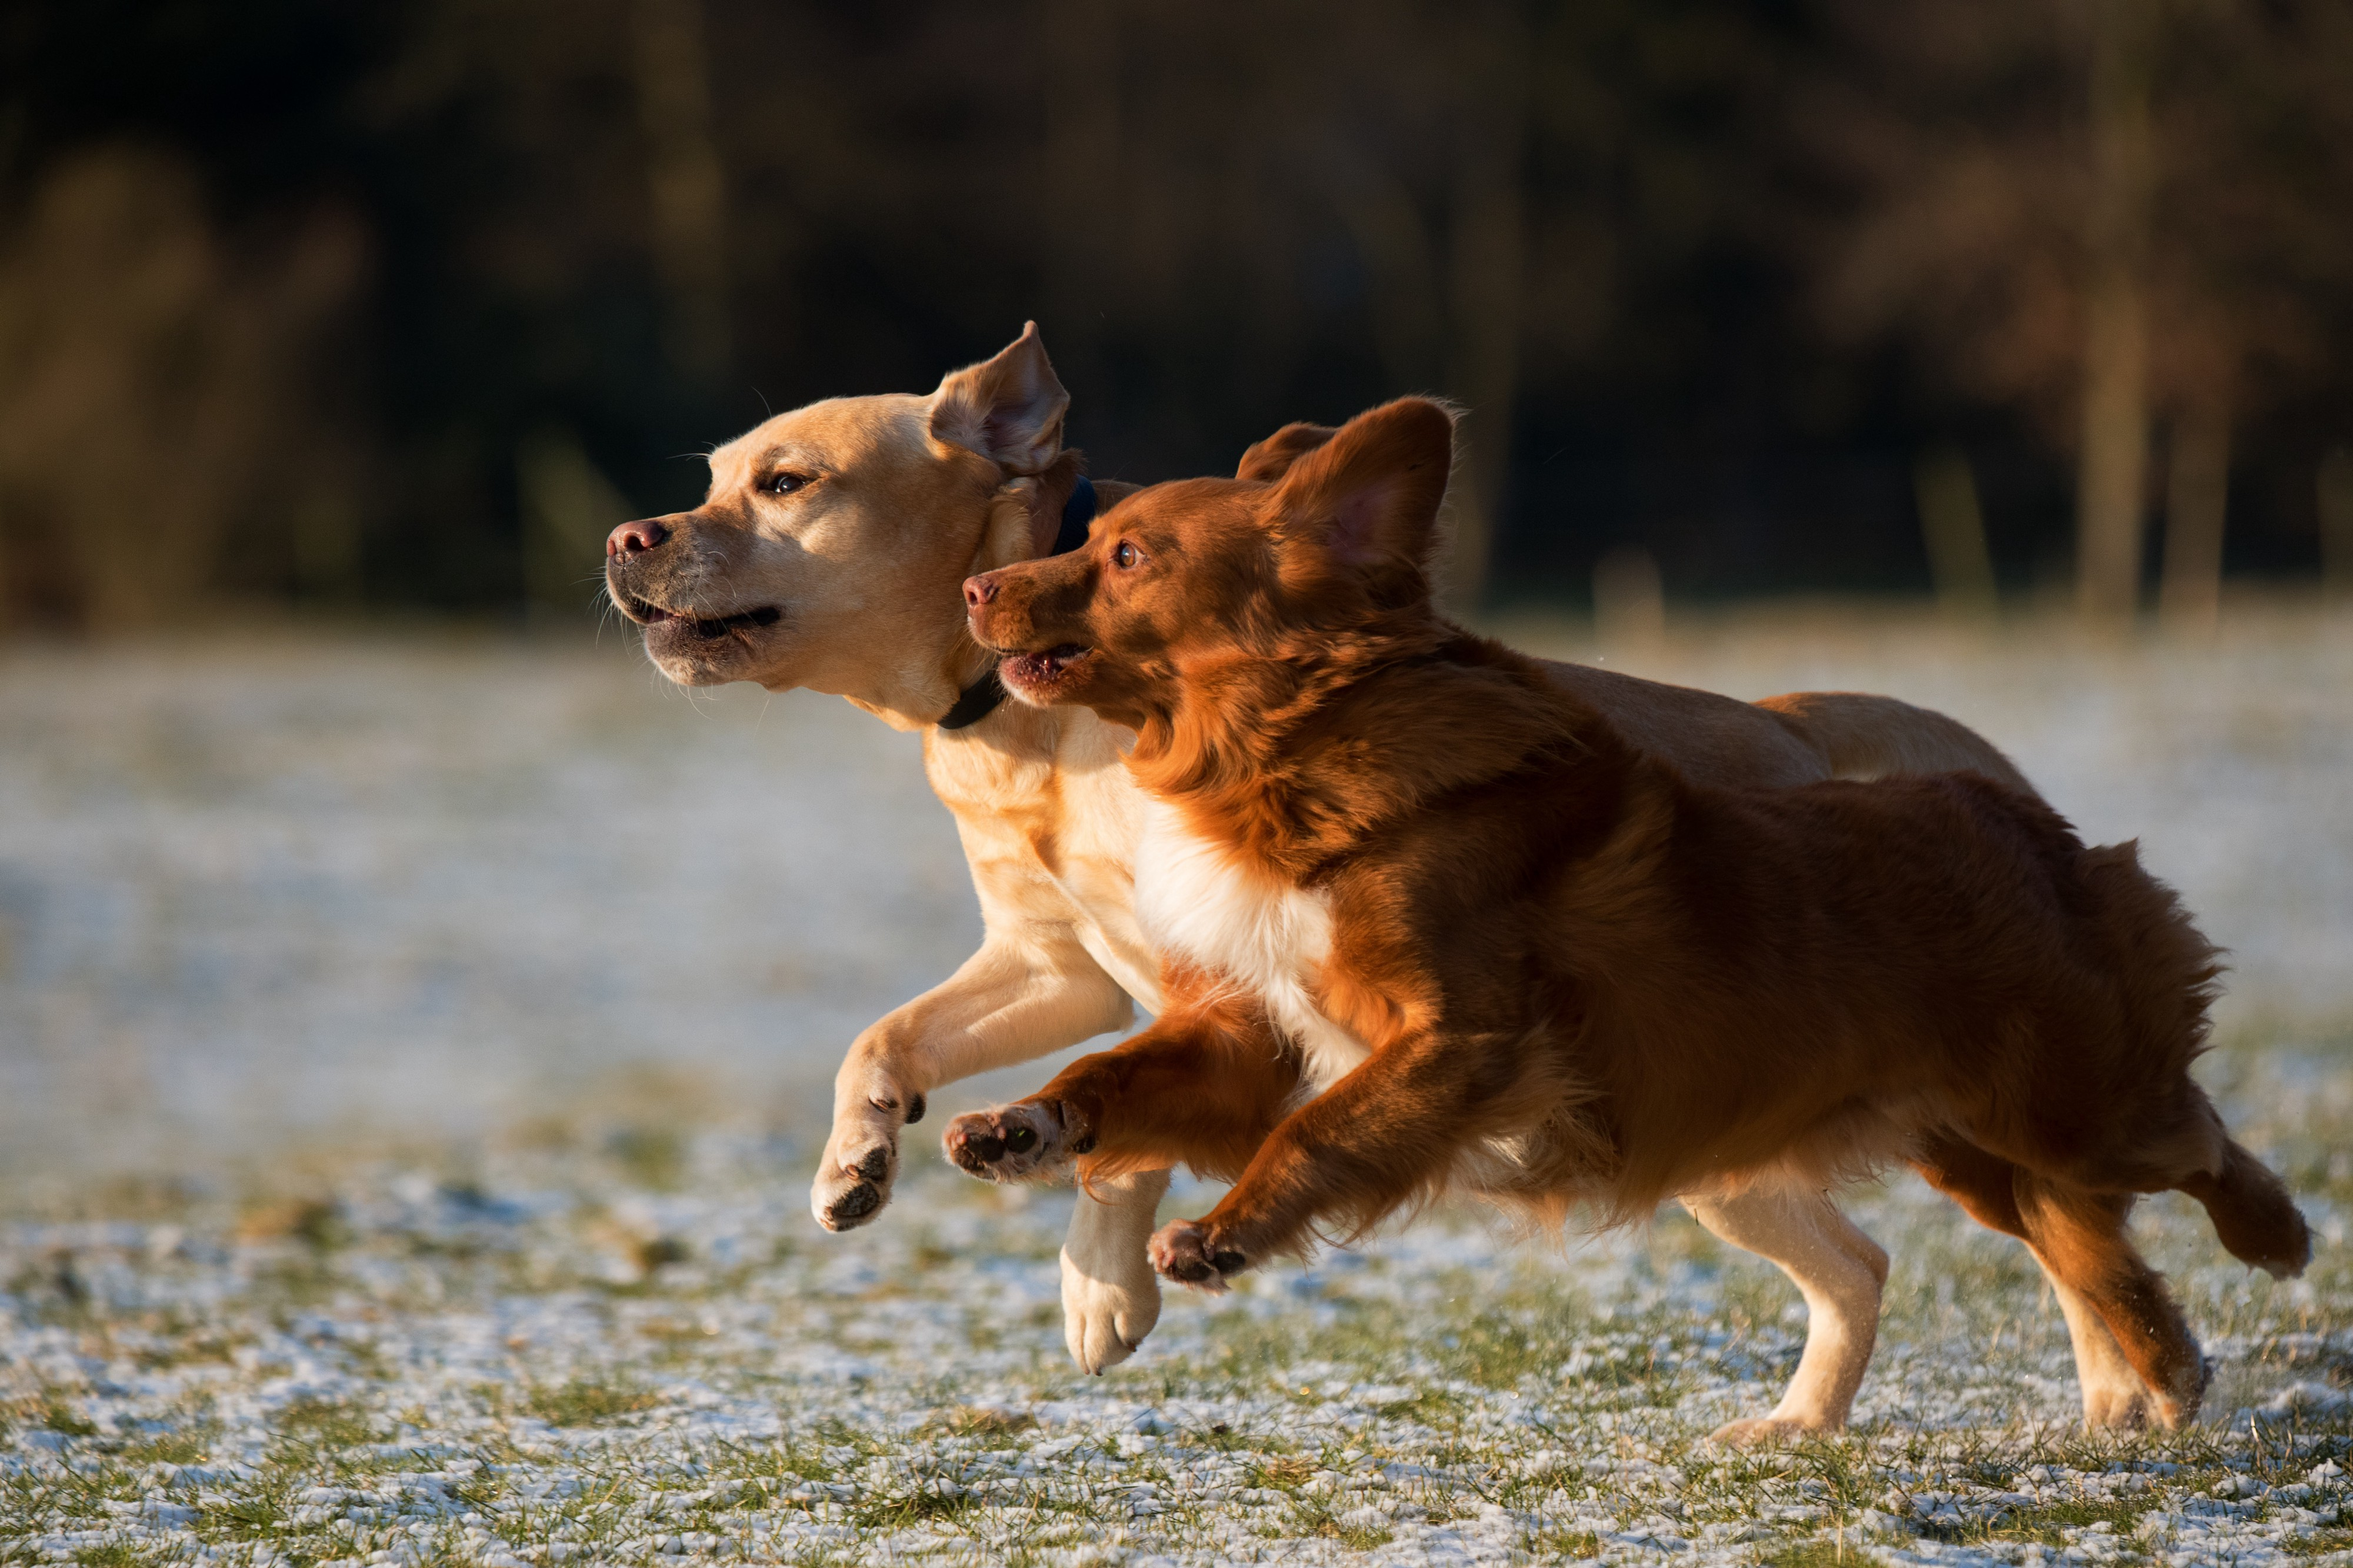 Two dogs running.